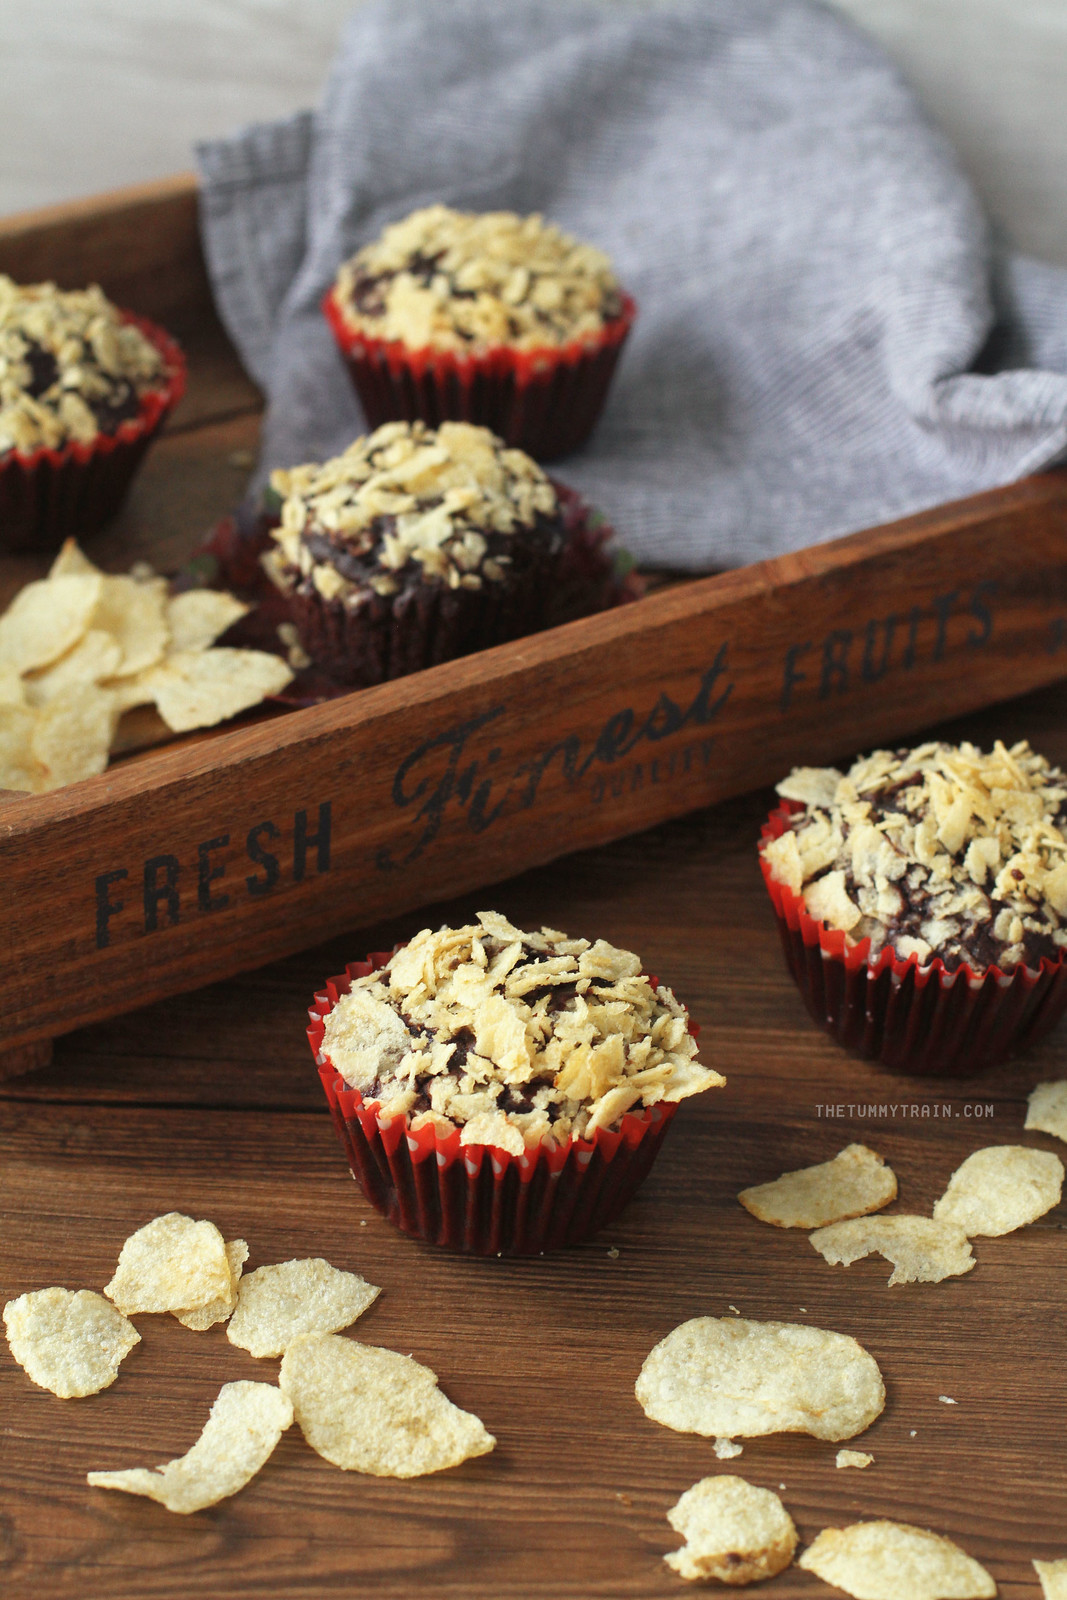 37741286242 862acd1c5a h - These Chocolate-Potato Chips Muffins are a unique play on sweet and salty